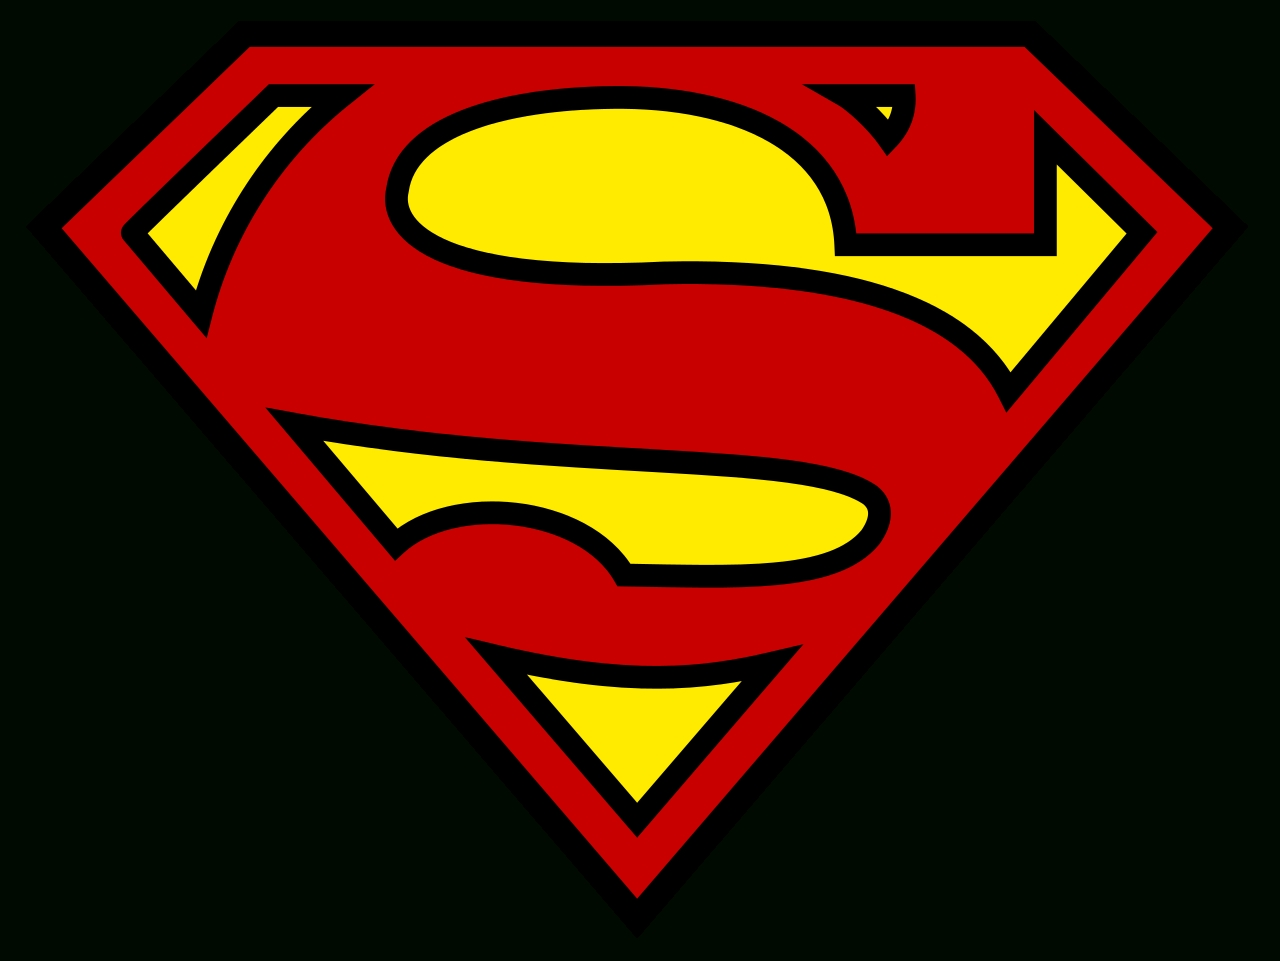 10 New Image Of Superman Logo FULL HD 1920×1080 For PC Desktop